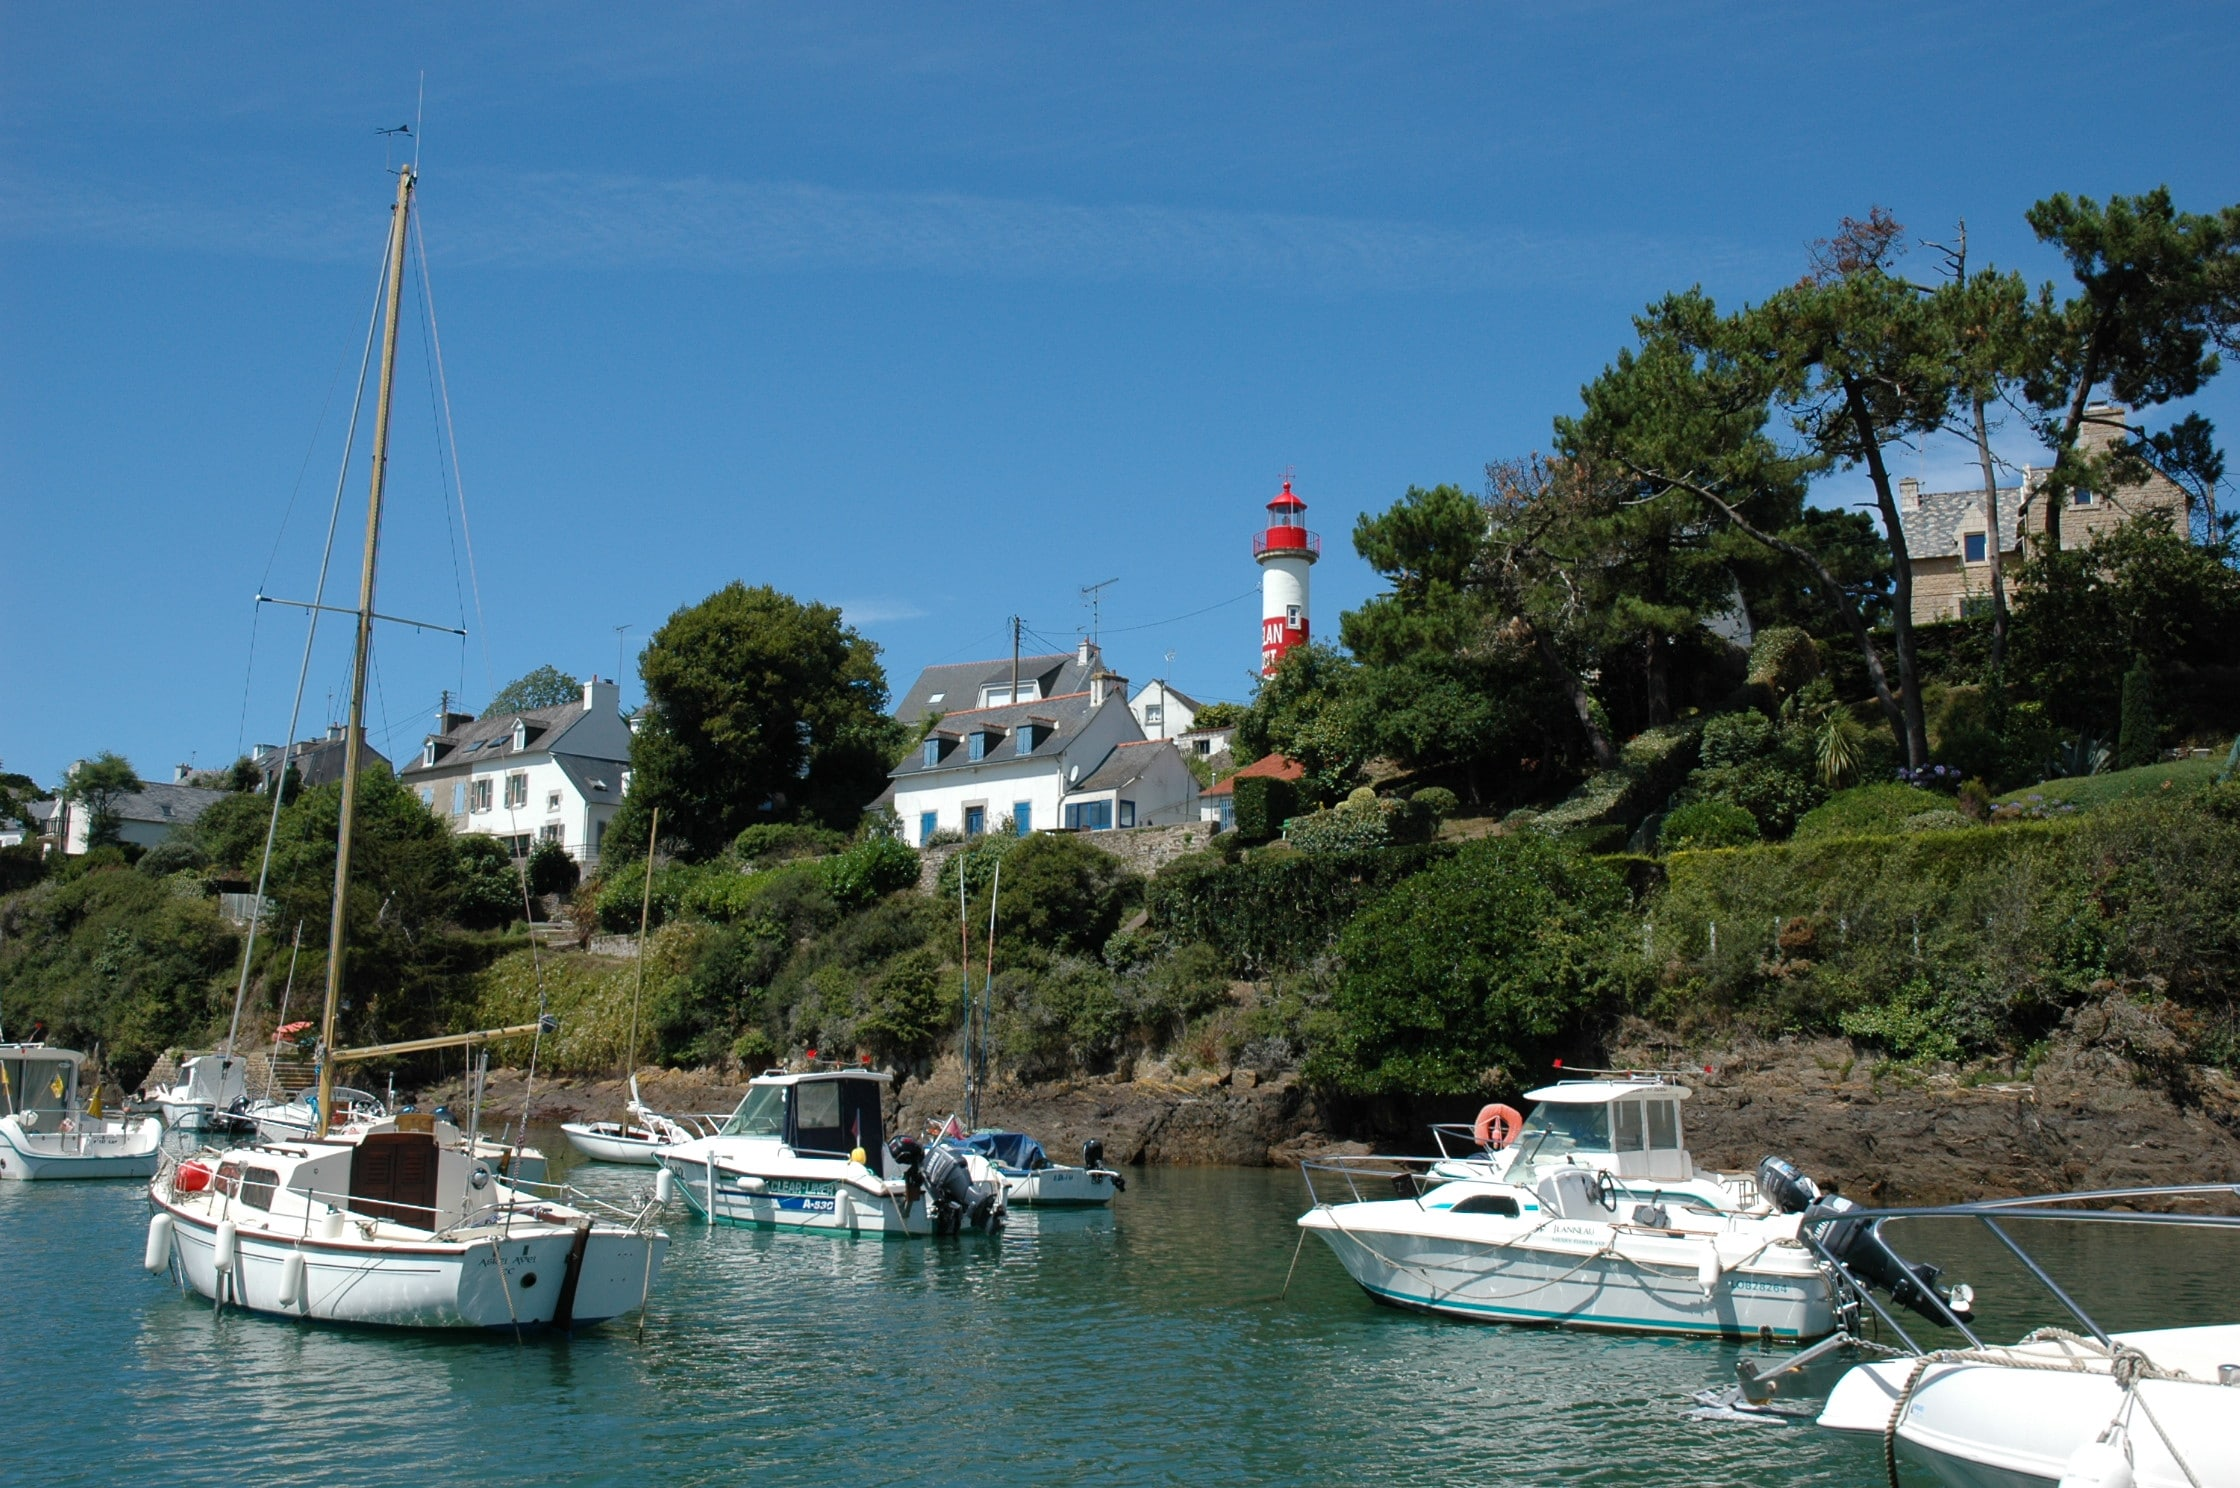 port de doelan et son phare rouge